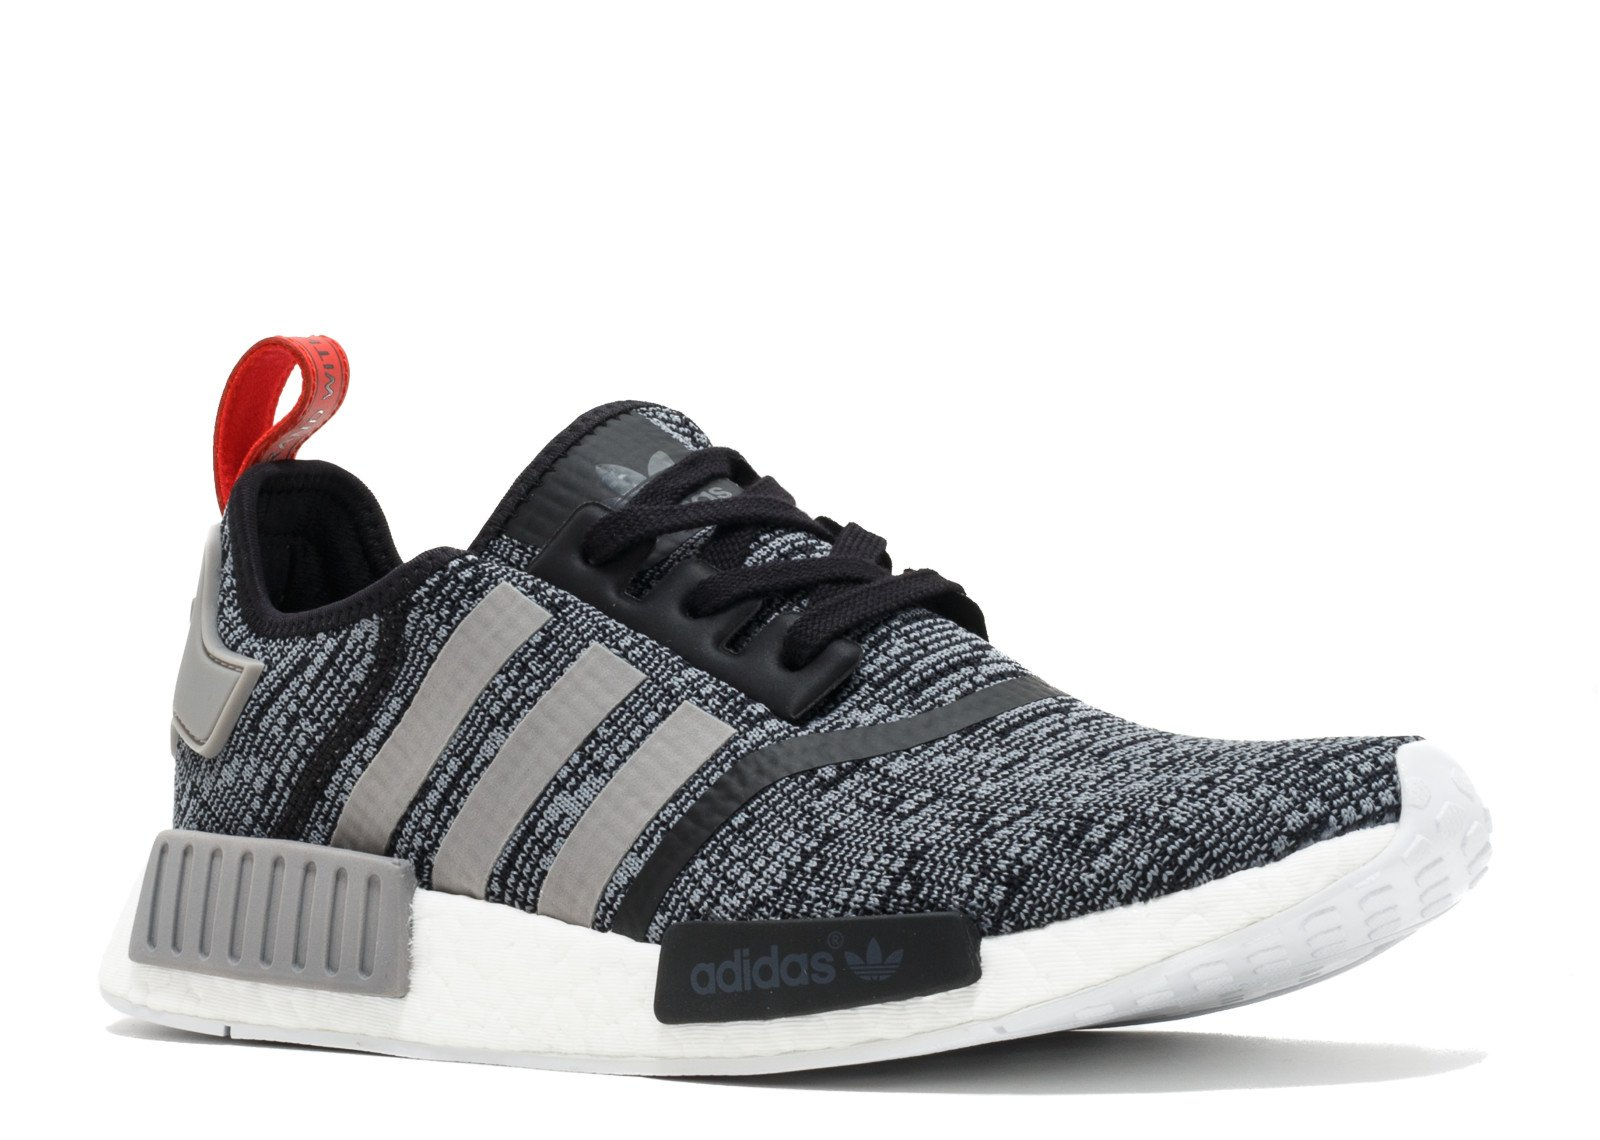 c095b80f2b915 Galleon - Adidas NMD R1 Men s Running Shoes Core Black Vibrant Red Running  White Bb2884 (9.5 D(M) US)